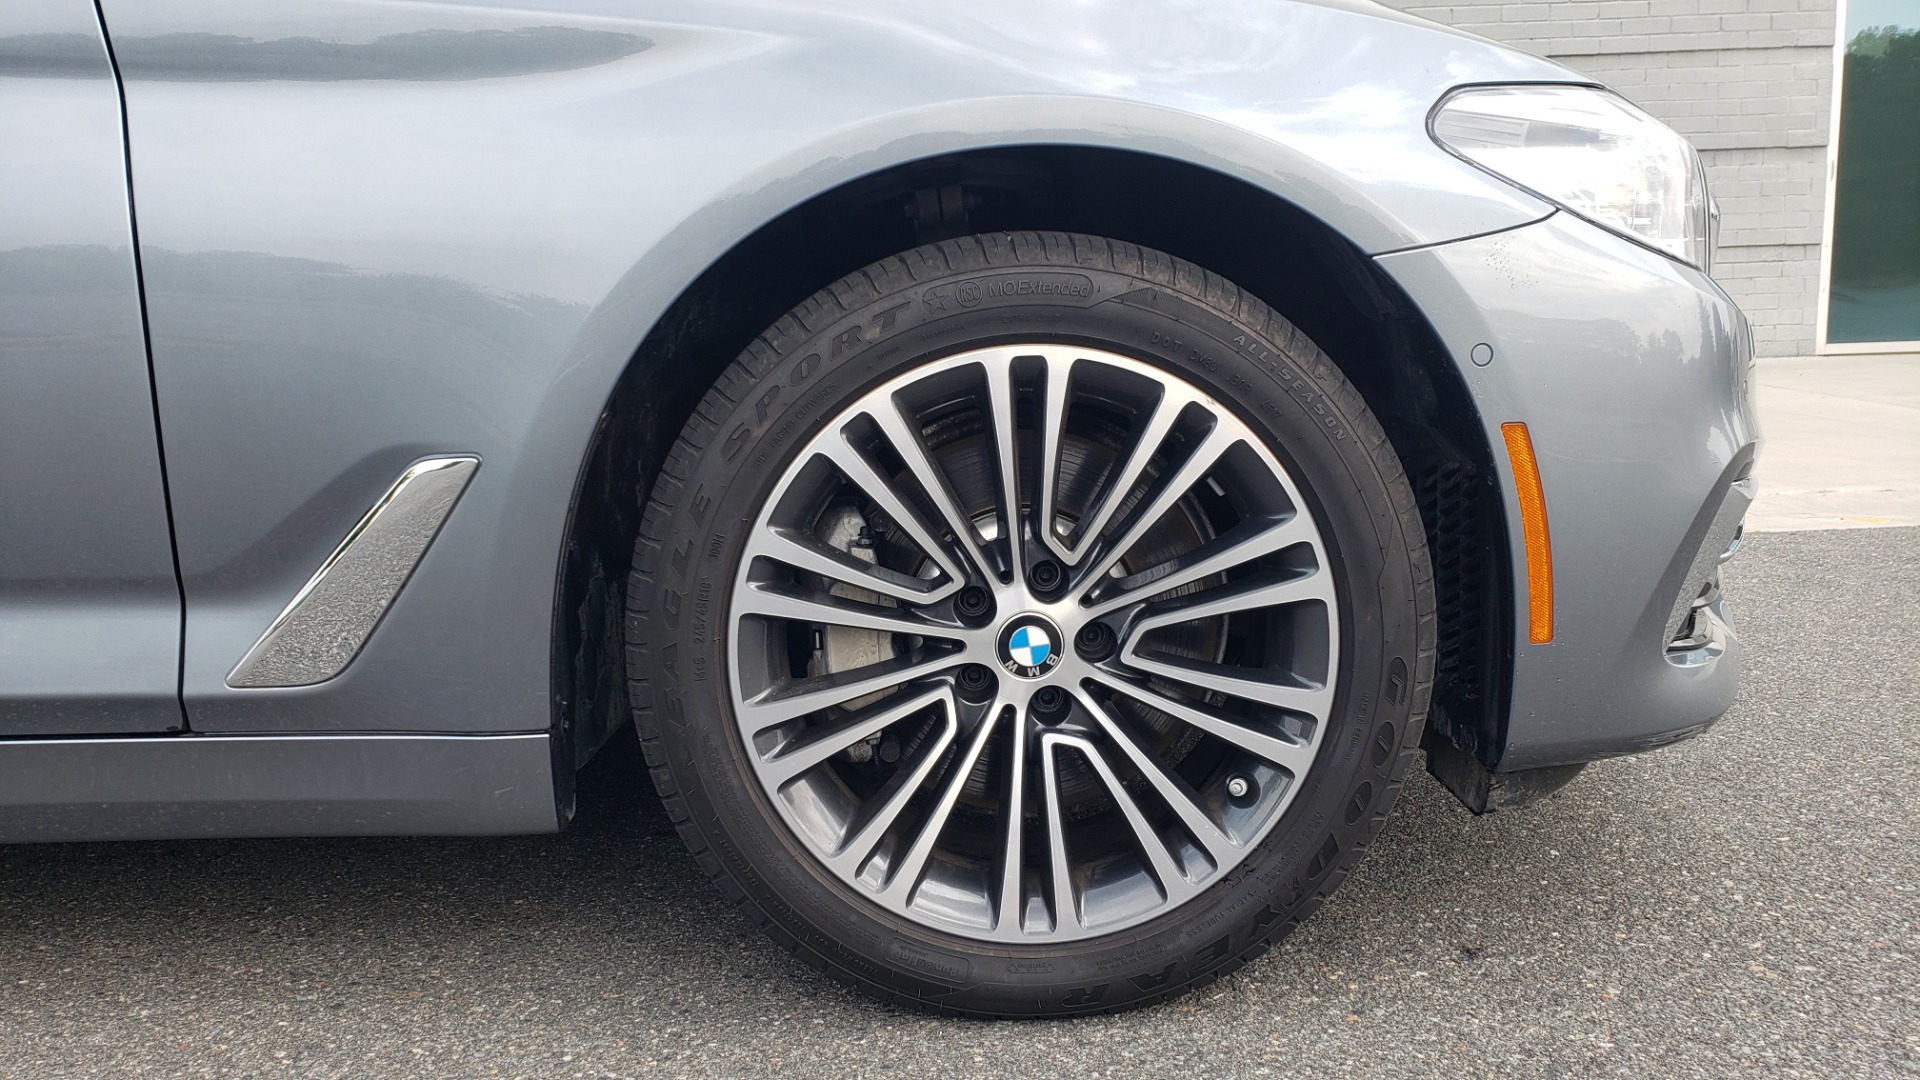 Used 2018 BMW 5 SERIES 540I XDRIVE PREMIUM / EXECUTIVE / LUXURY / H/K SND / REMOTE CONTROL PARKING for sale $40,995 at Formula Imports in Charlotte NC 28227 79